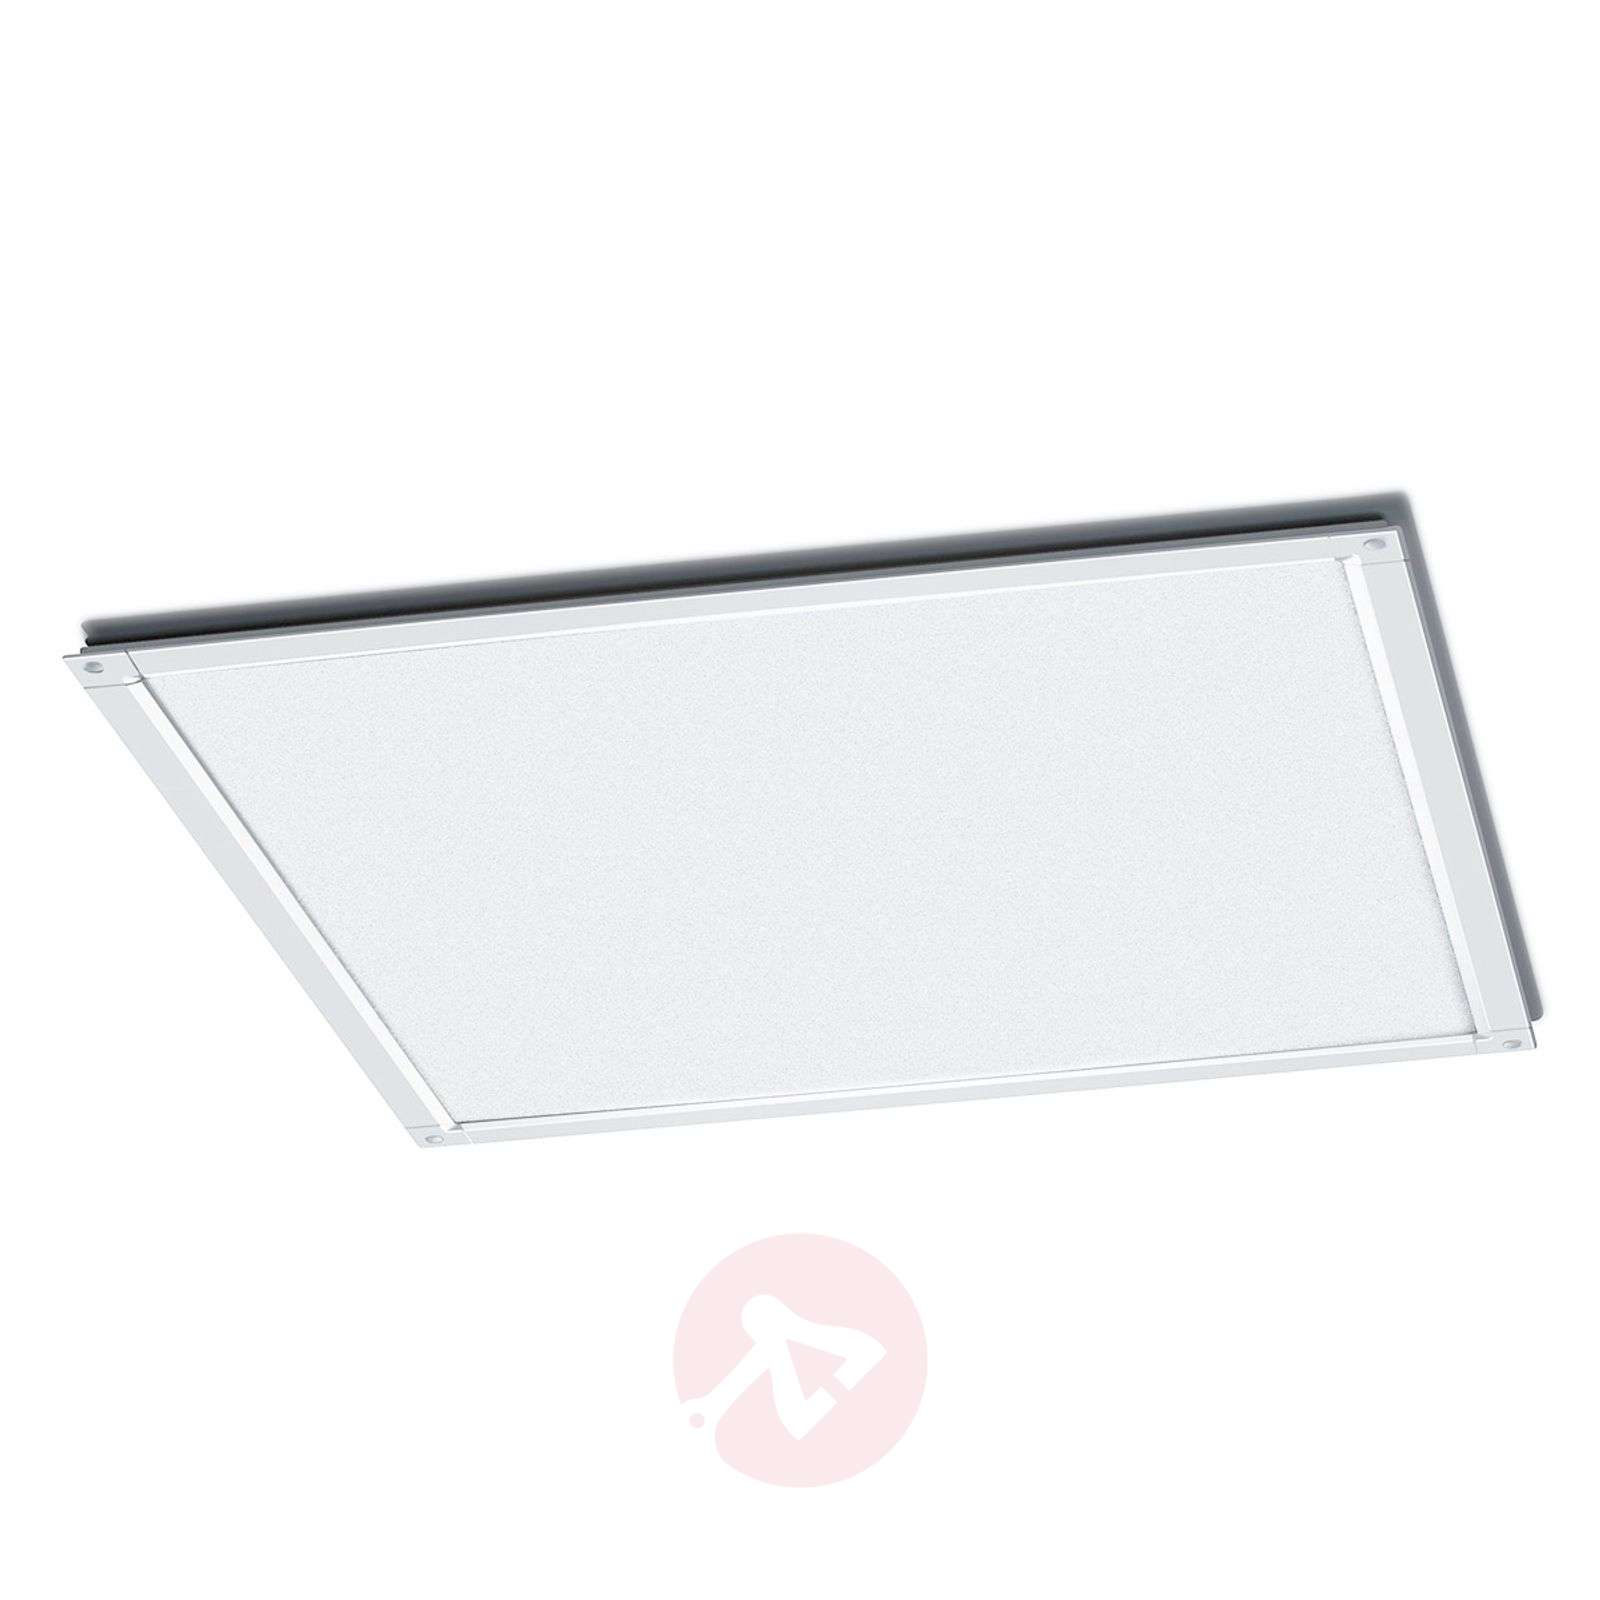 Panel LED blanco neutro EC 620, 4250 lúmenes-6084002-01